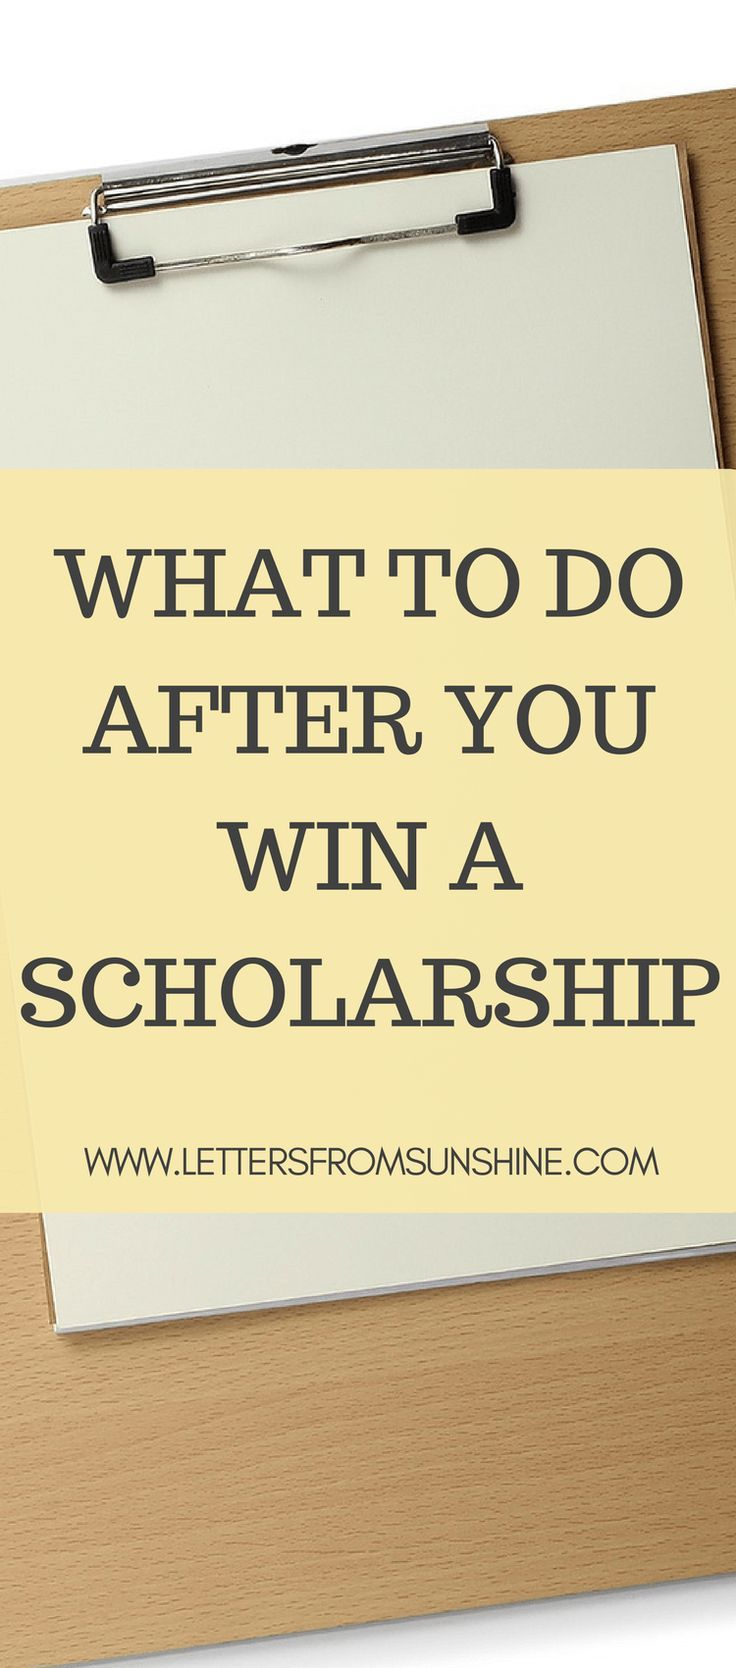 What To Do After You Win A Scholarship  There Are Plenty Of Articles That  Reveal